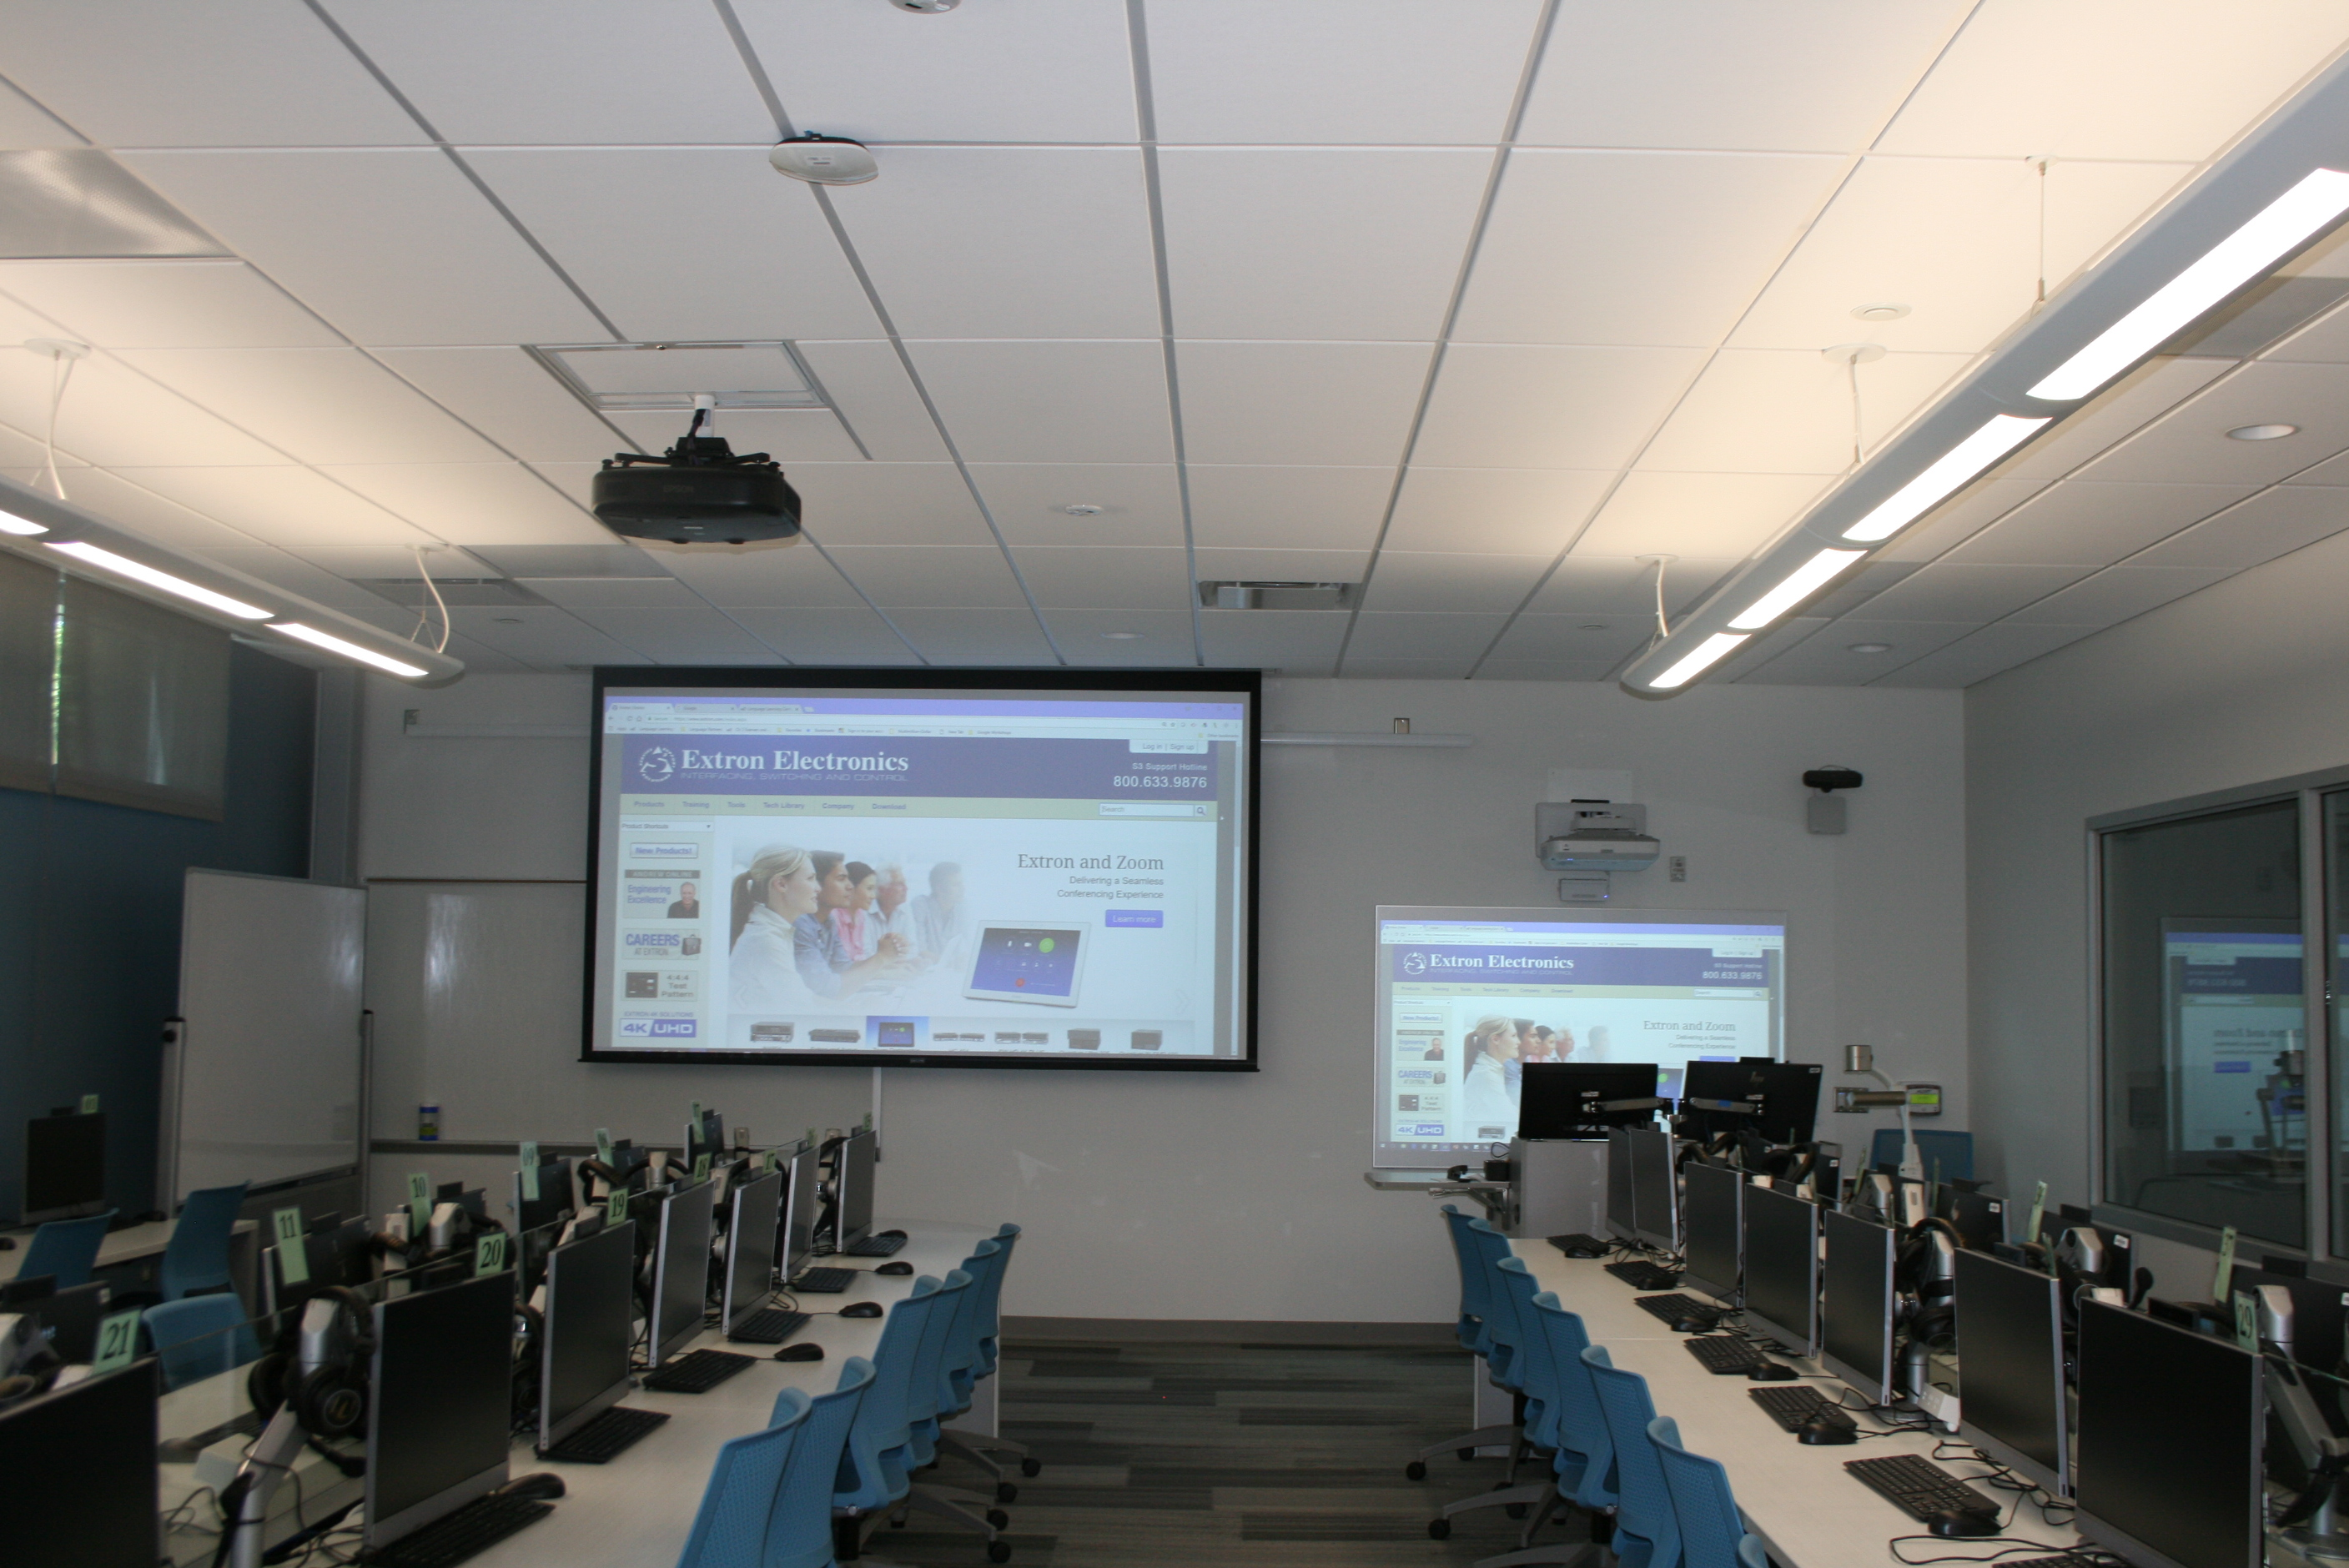 Classroom with a projection screen in front and to the side of the whiteboard